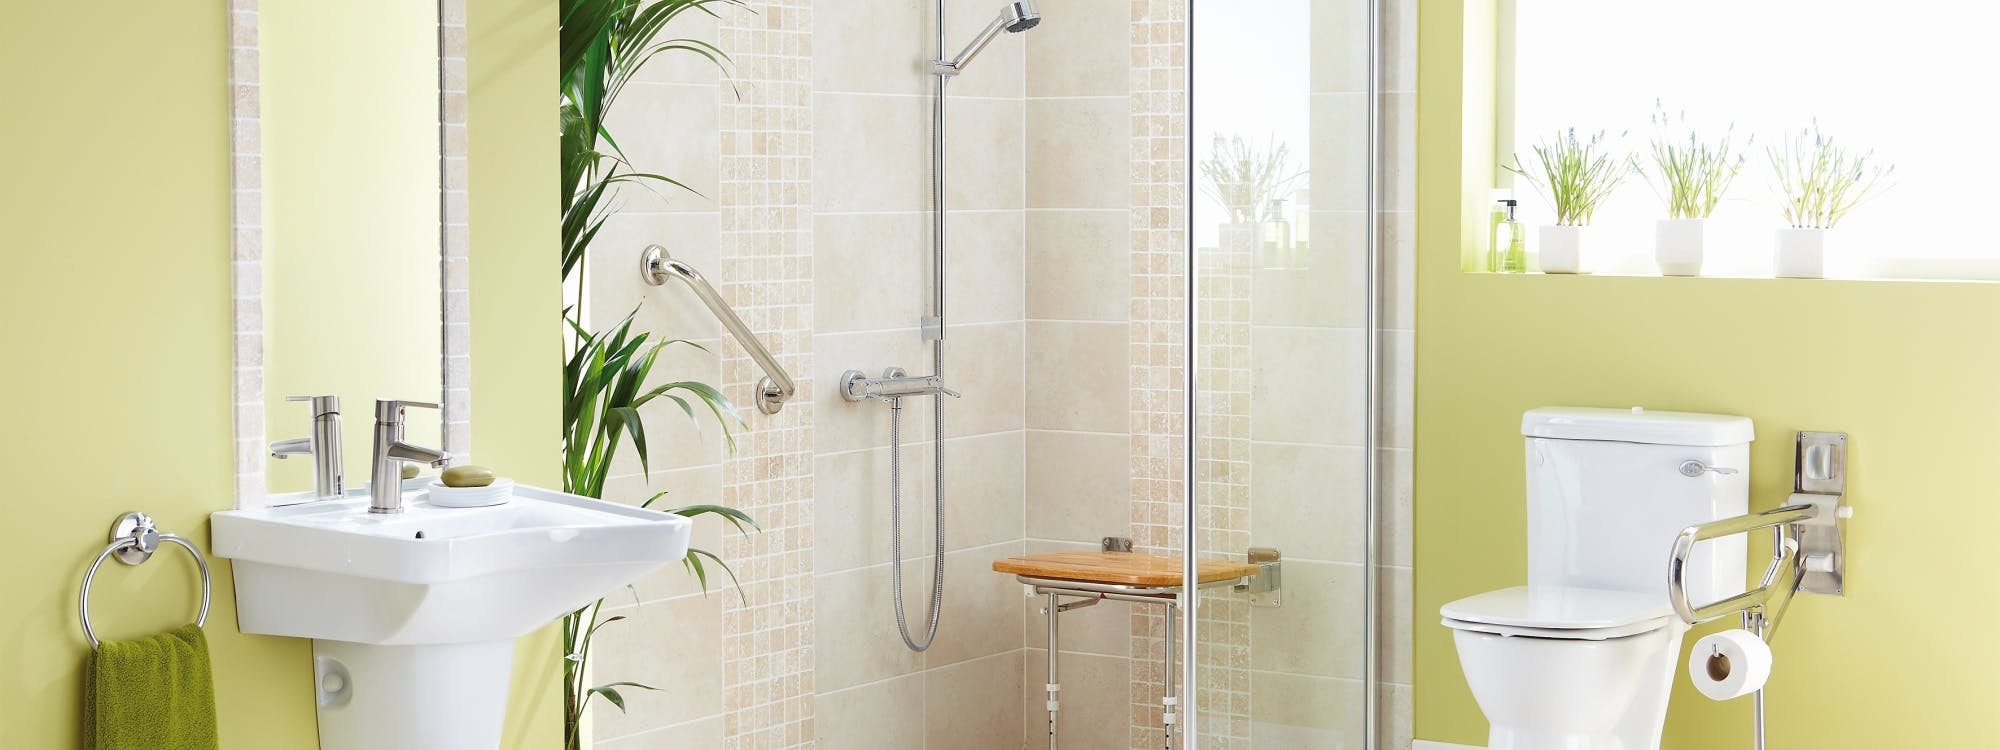 Easy Access Bath / Shower Rooms - designed, supplied & installed